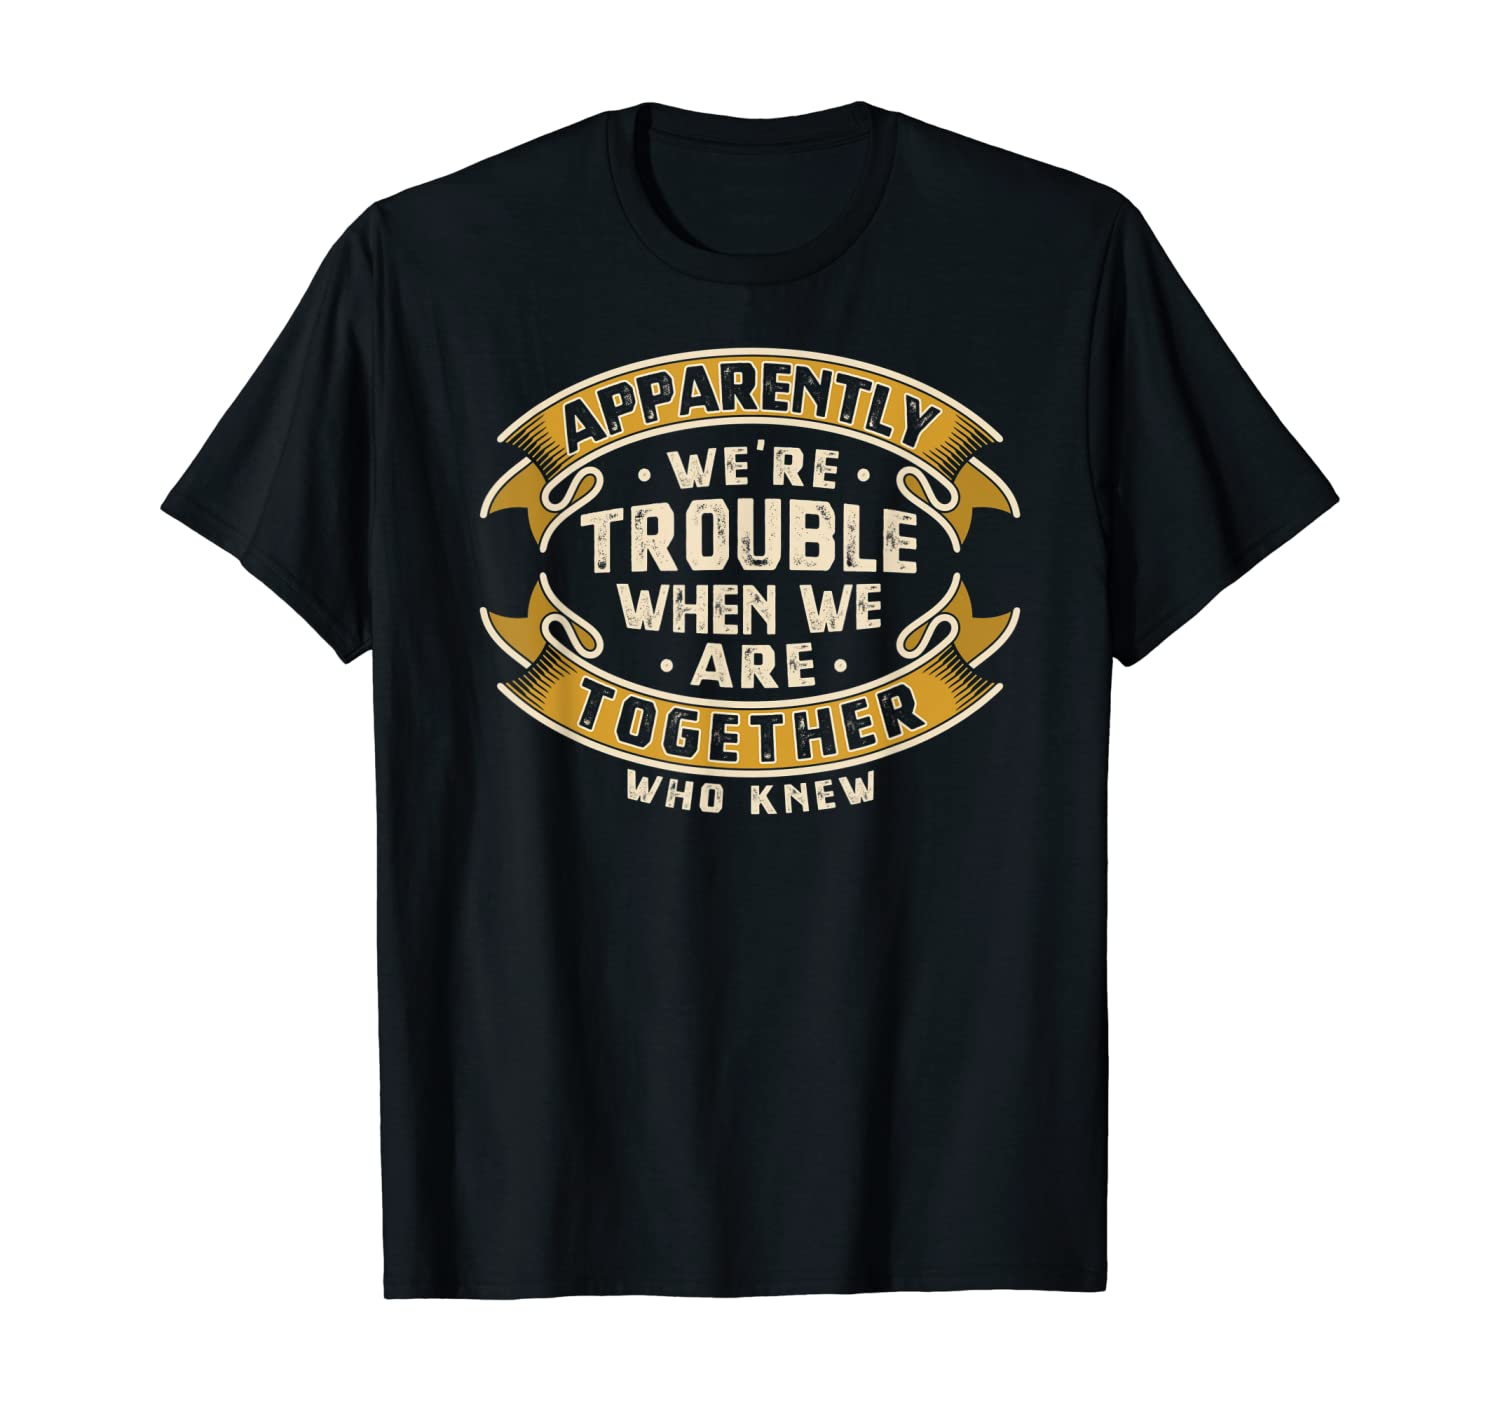 Apparently We're Trouble When We Are Together Who Knew T-Shirt